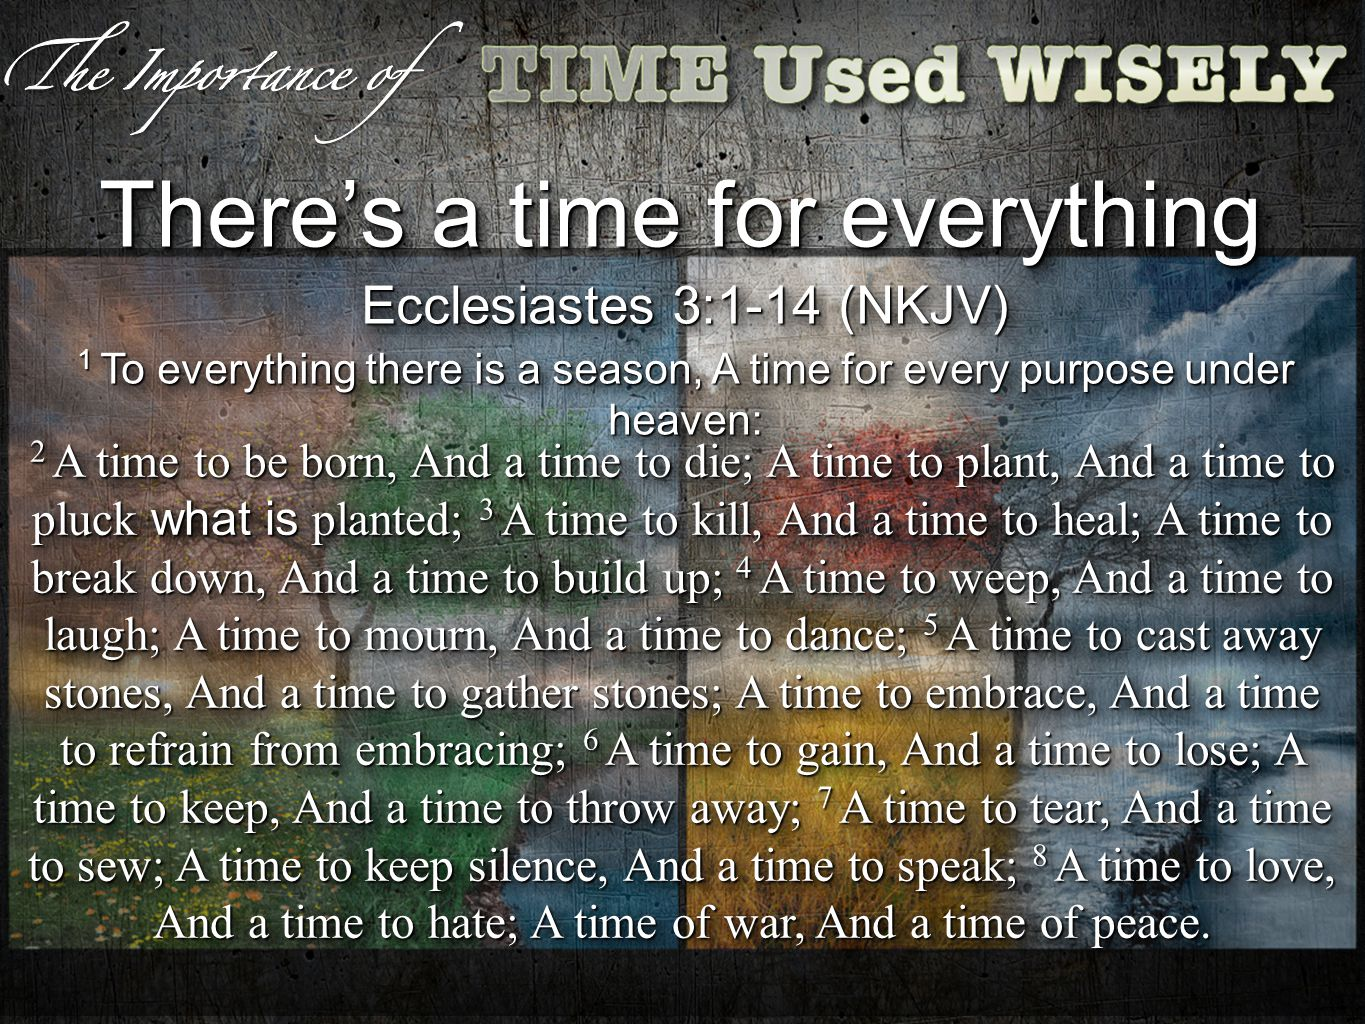 Theres a time for everything Ecclesiastes 3:1-14 (NKJV) 1 To everything there is a season, A time for every purpose under heaven: Ecclesiastes 3:1-14 (NKJV) 1 To everything there is a season, A time for every purpose under heaven: 2 A time to be born, And a time to die; A time to plant, And a time to pluck what is planted; 3 A time to kill, And a time to heal; A time to break down, And a time to build up; 4 A time to weep, And a time to laugh; A time to mourn, And a time to dance; 5 A time to cast away stones, And a time to gather stones; A time to embrace, And a time to refrain from embracing; 6 A time to gain, And a time to lose; A time to keep, And a time to throw away; 7 A time to tear, And a time to sew; A time to keep silence, And a time to speak; 8 A time to love, And a time to hate; A time of war, And a time of peace.